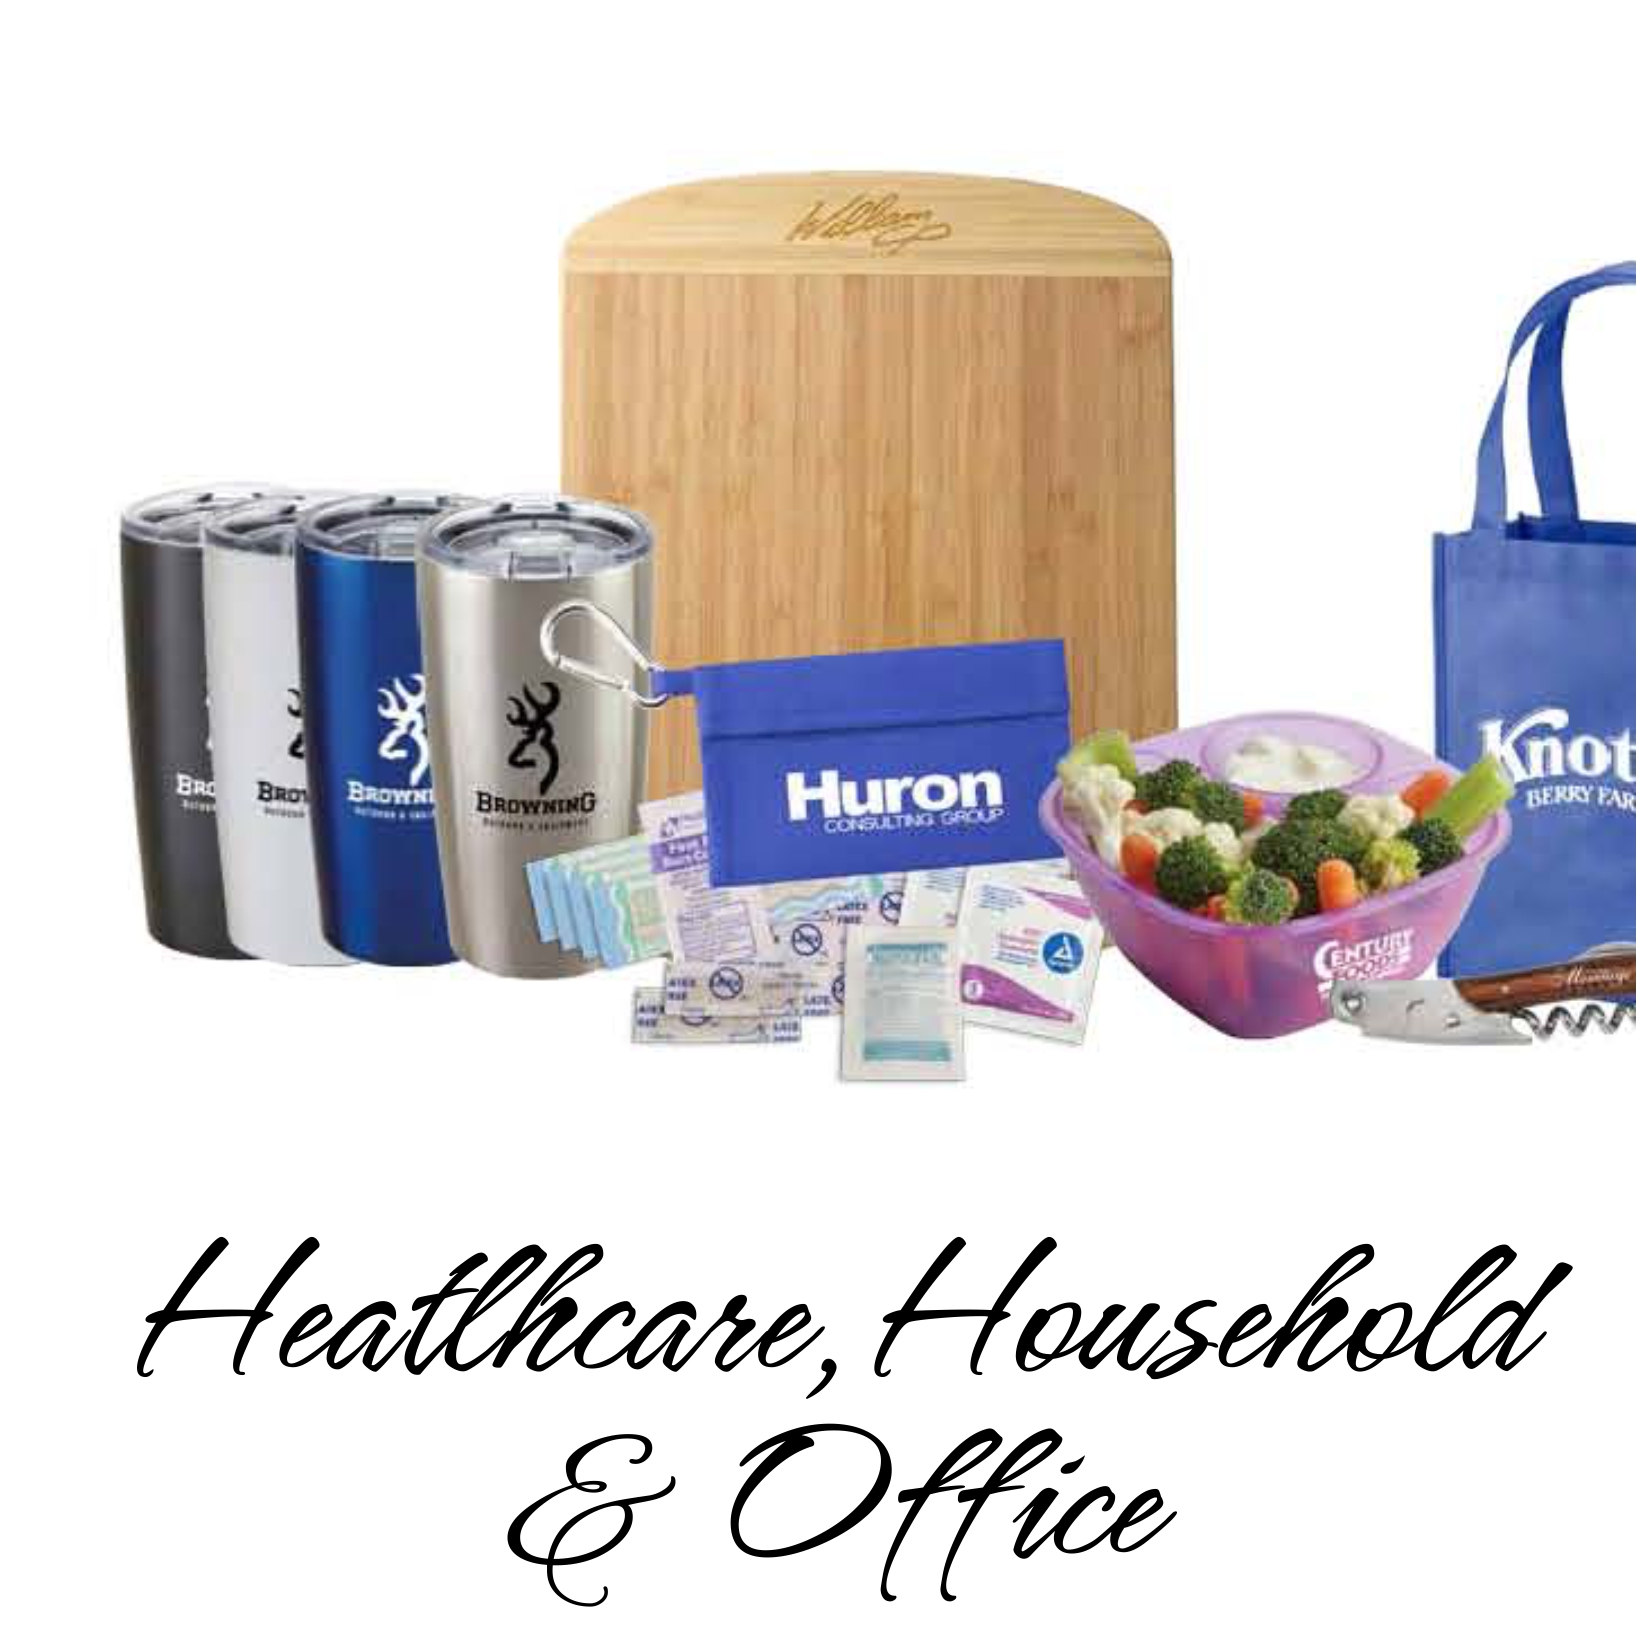 Healthcare, Household & Office